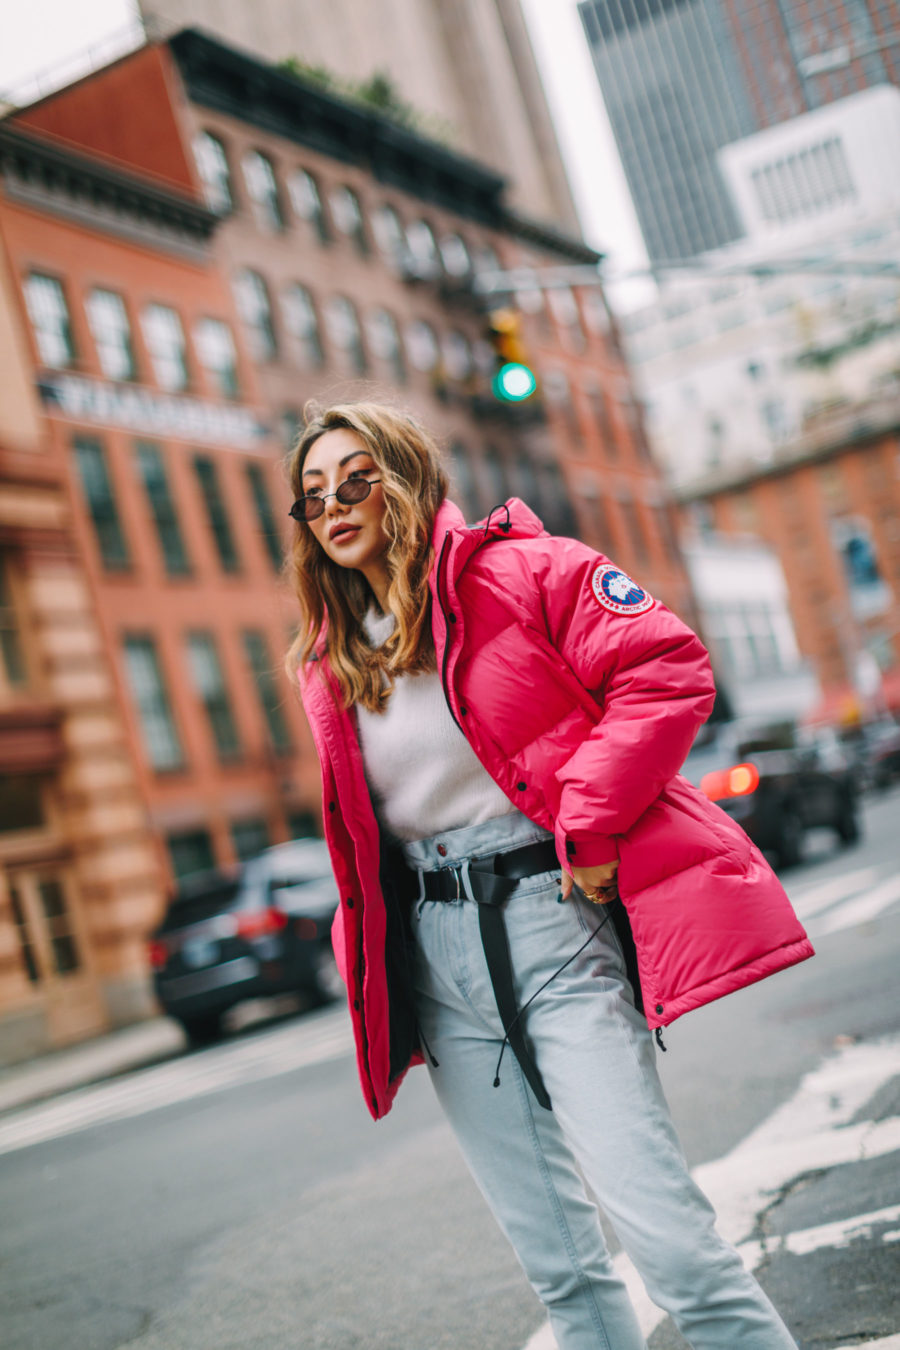 jessica wang wears trendy winter coats - pink puffer coat // Jessica Wang - Notjessfashion.com